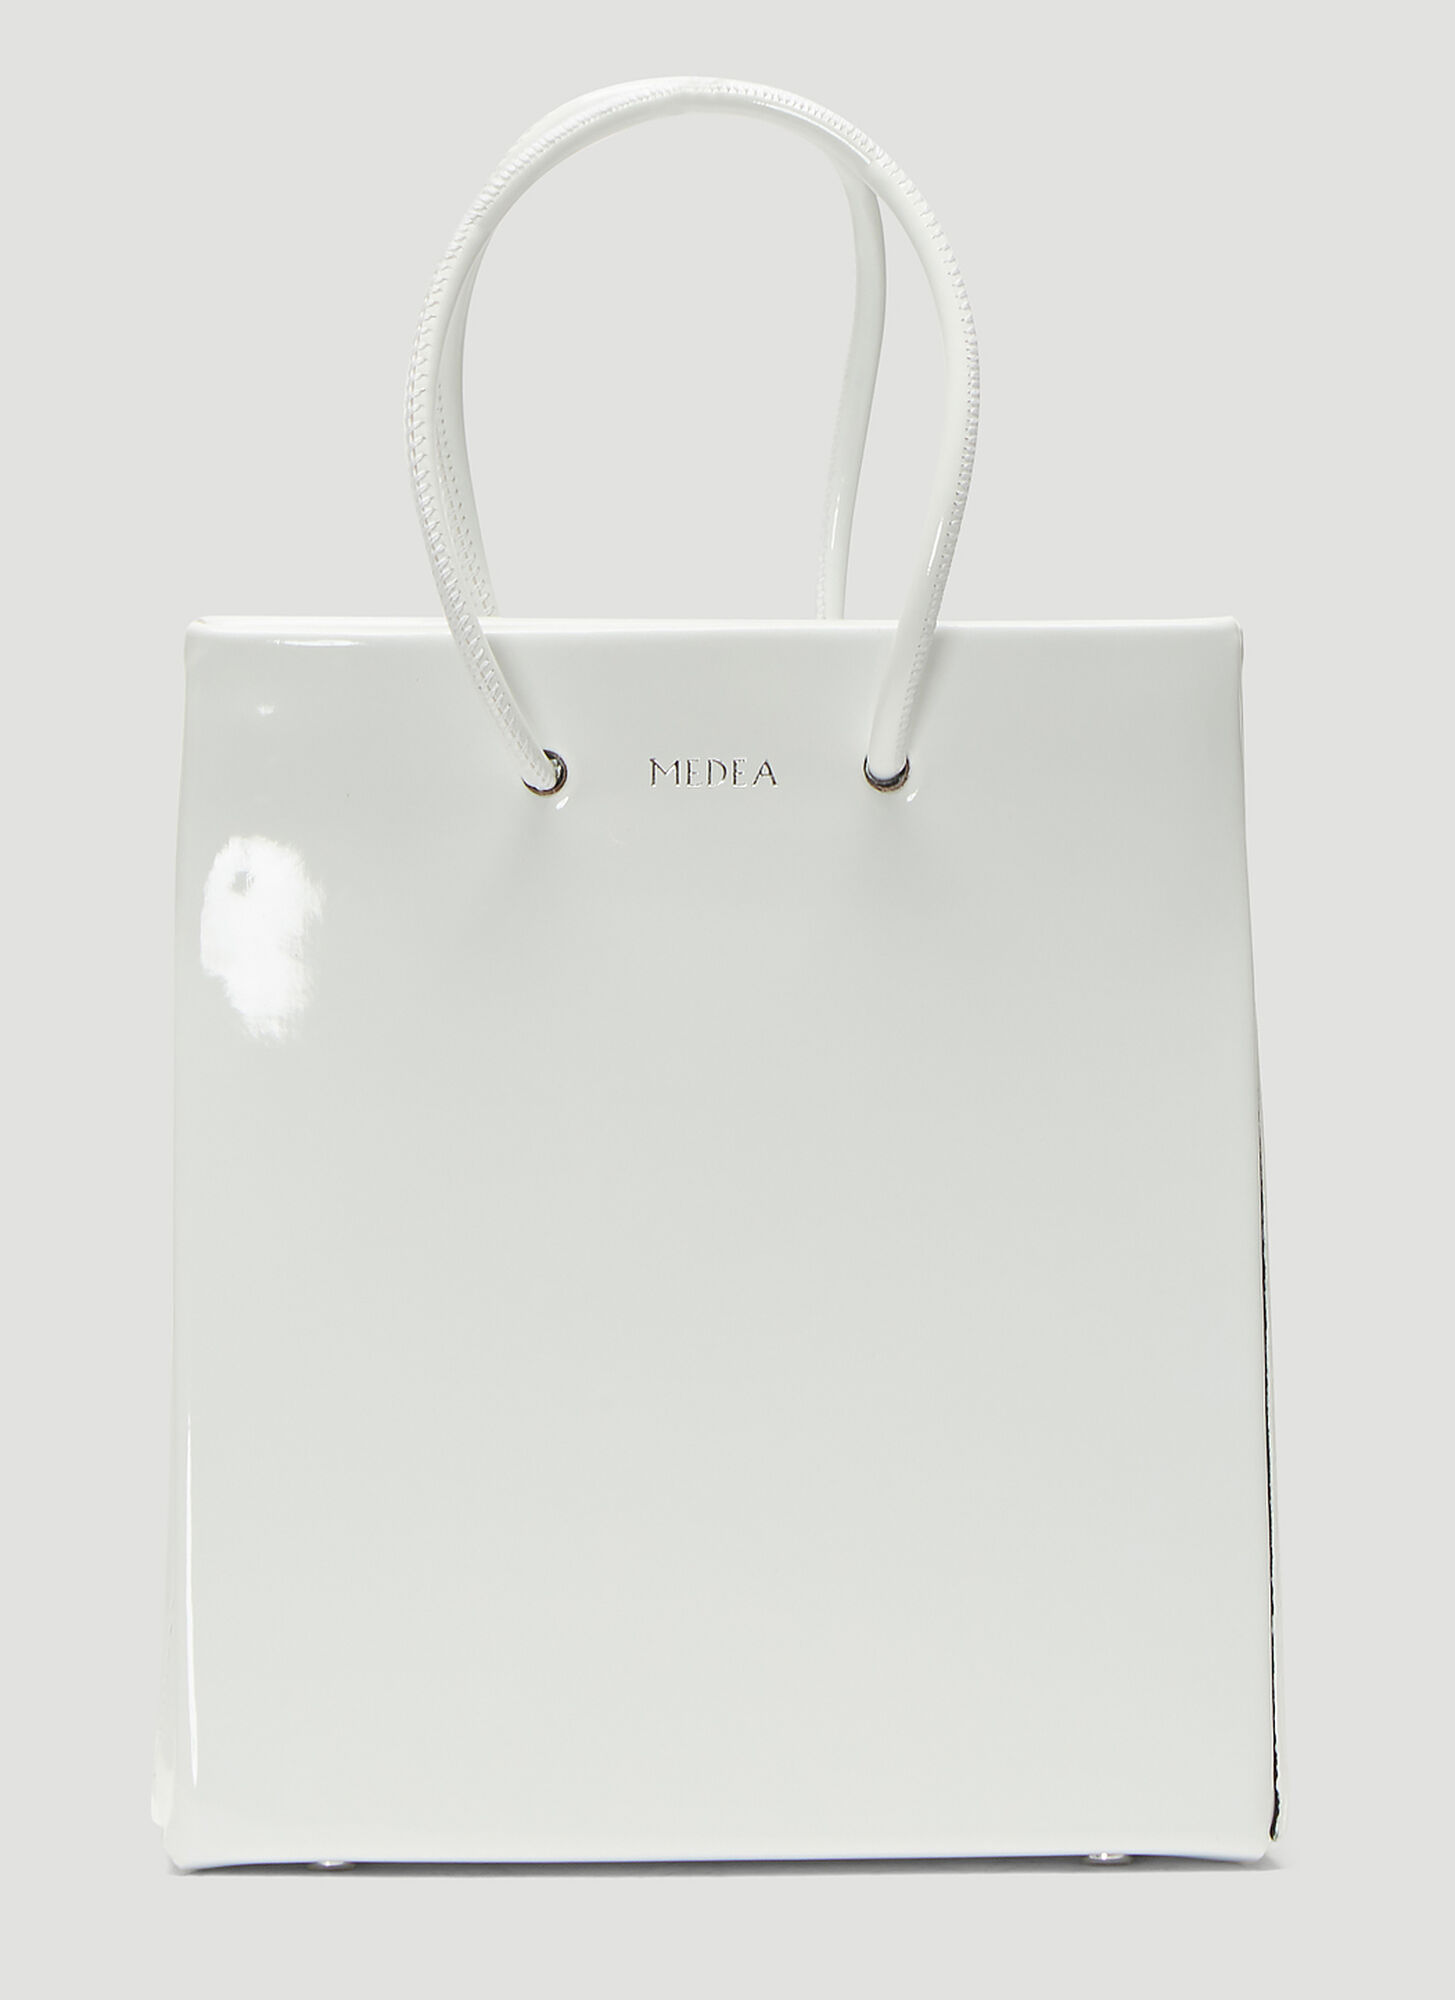 Medea Short Vinile Shopper Bag in White